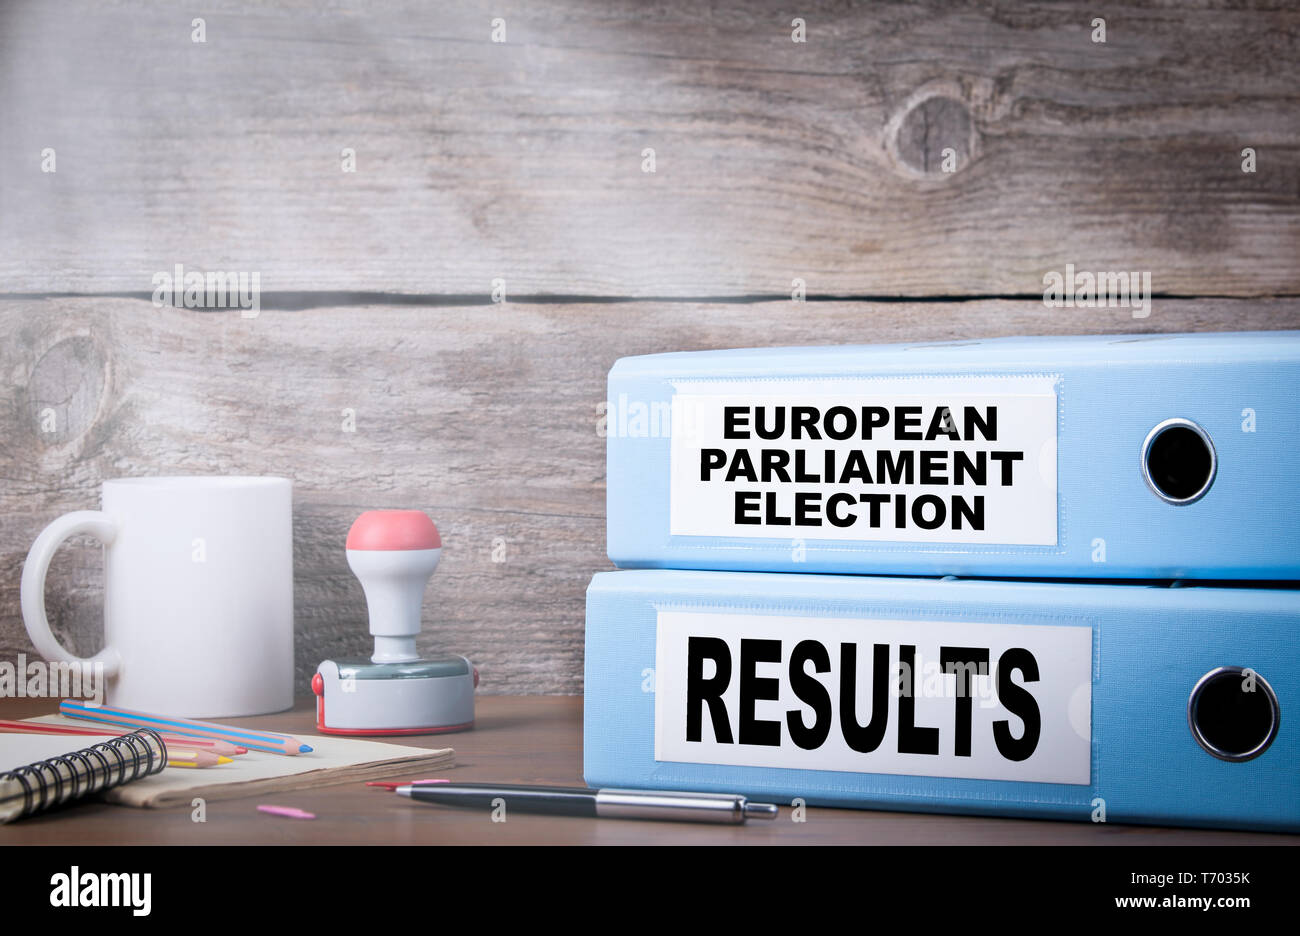 European Parliament Election and results. Two binders on desk in the office - Stock Image